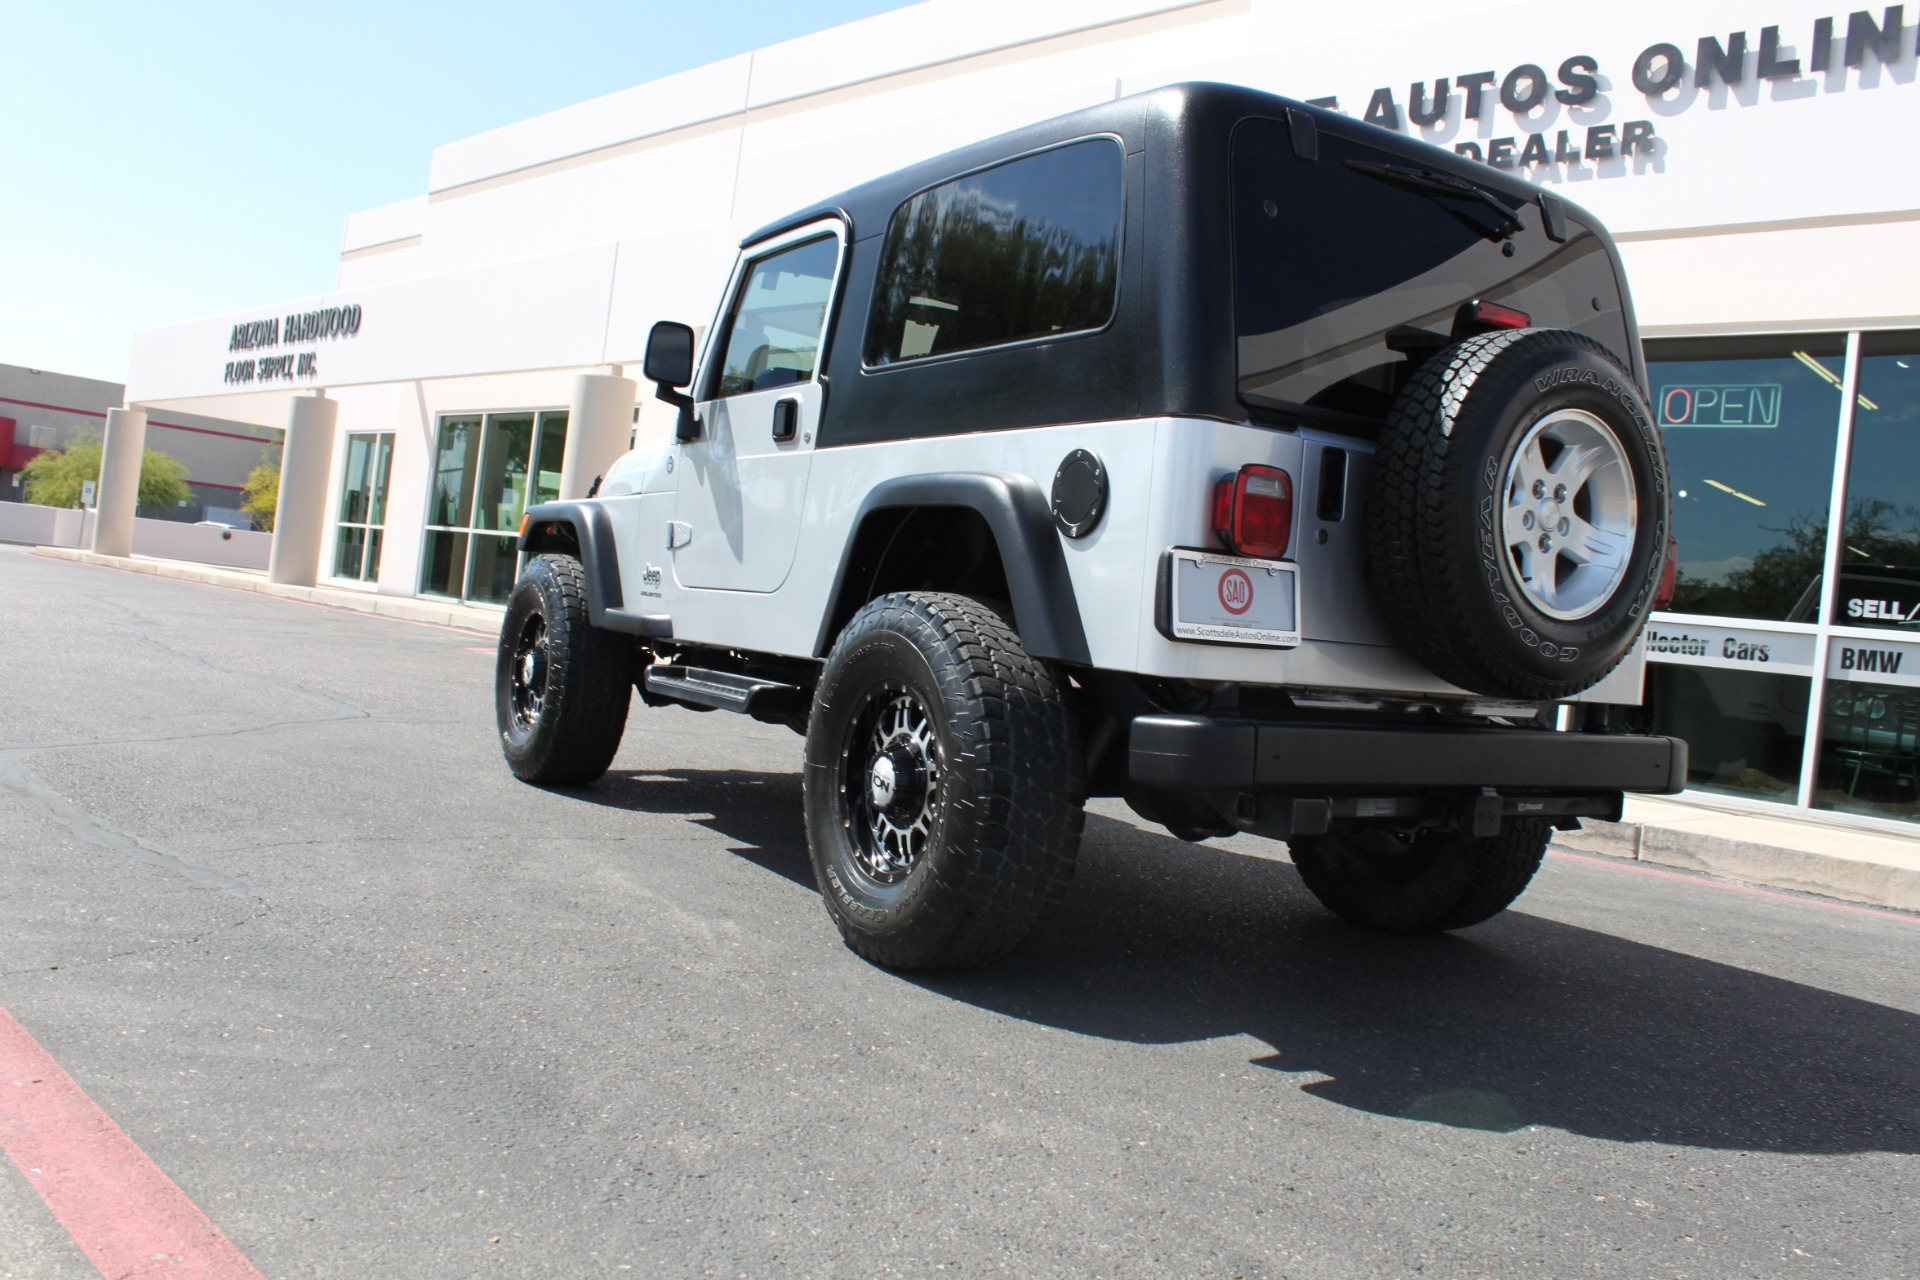 Used-2006-Jeep-Wrangler-Unlimited-LWB-Chevelle